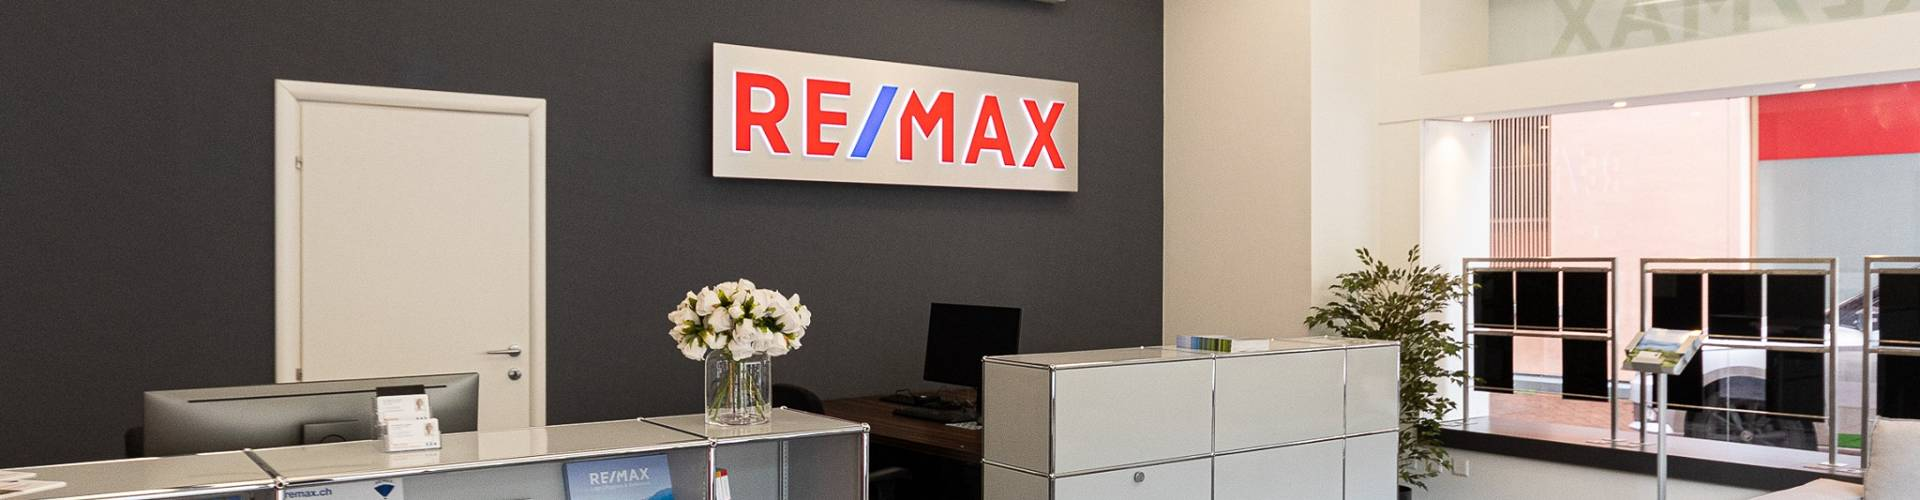 RE/MAX Immobiliare Bellinzona